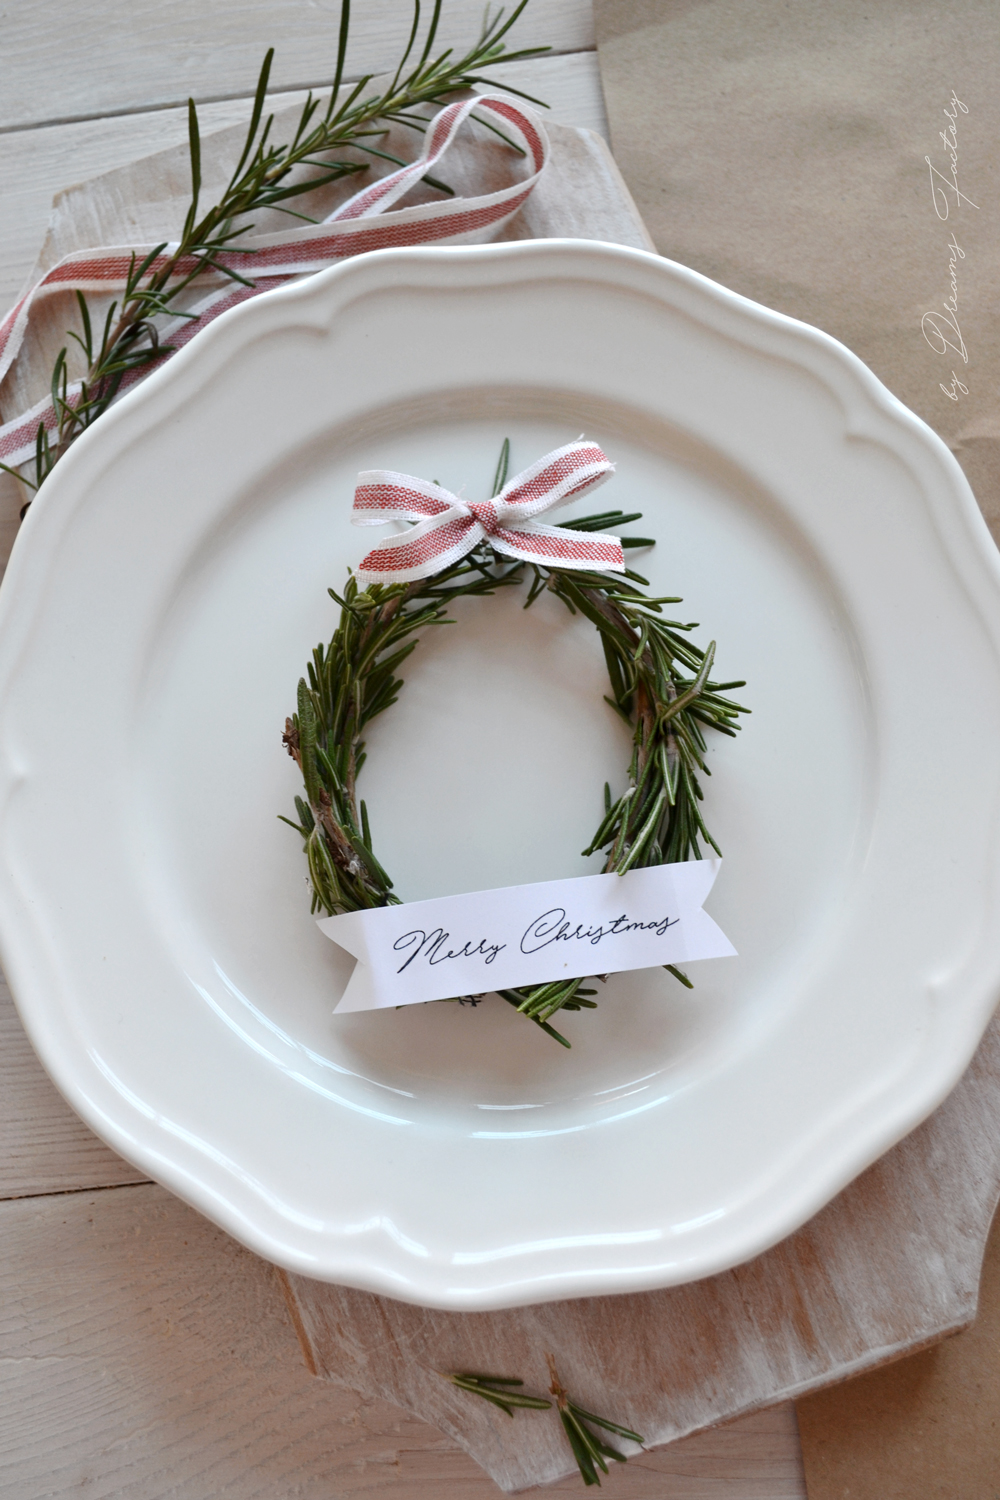 mini-rosemary-wreaths-free-ribbon-banners-for-christmas-50